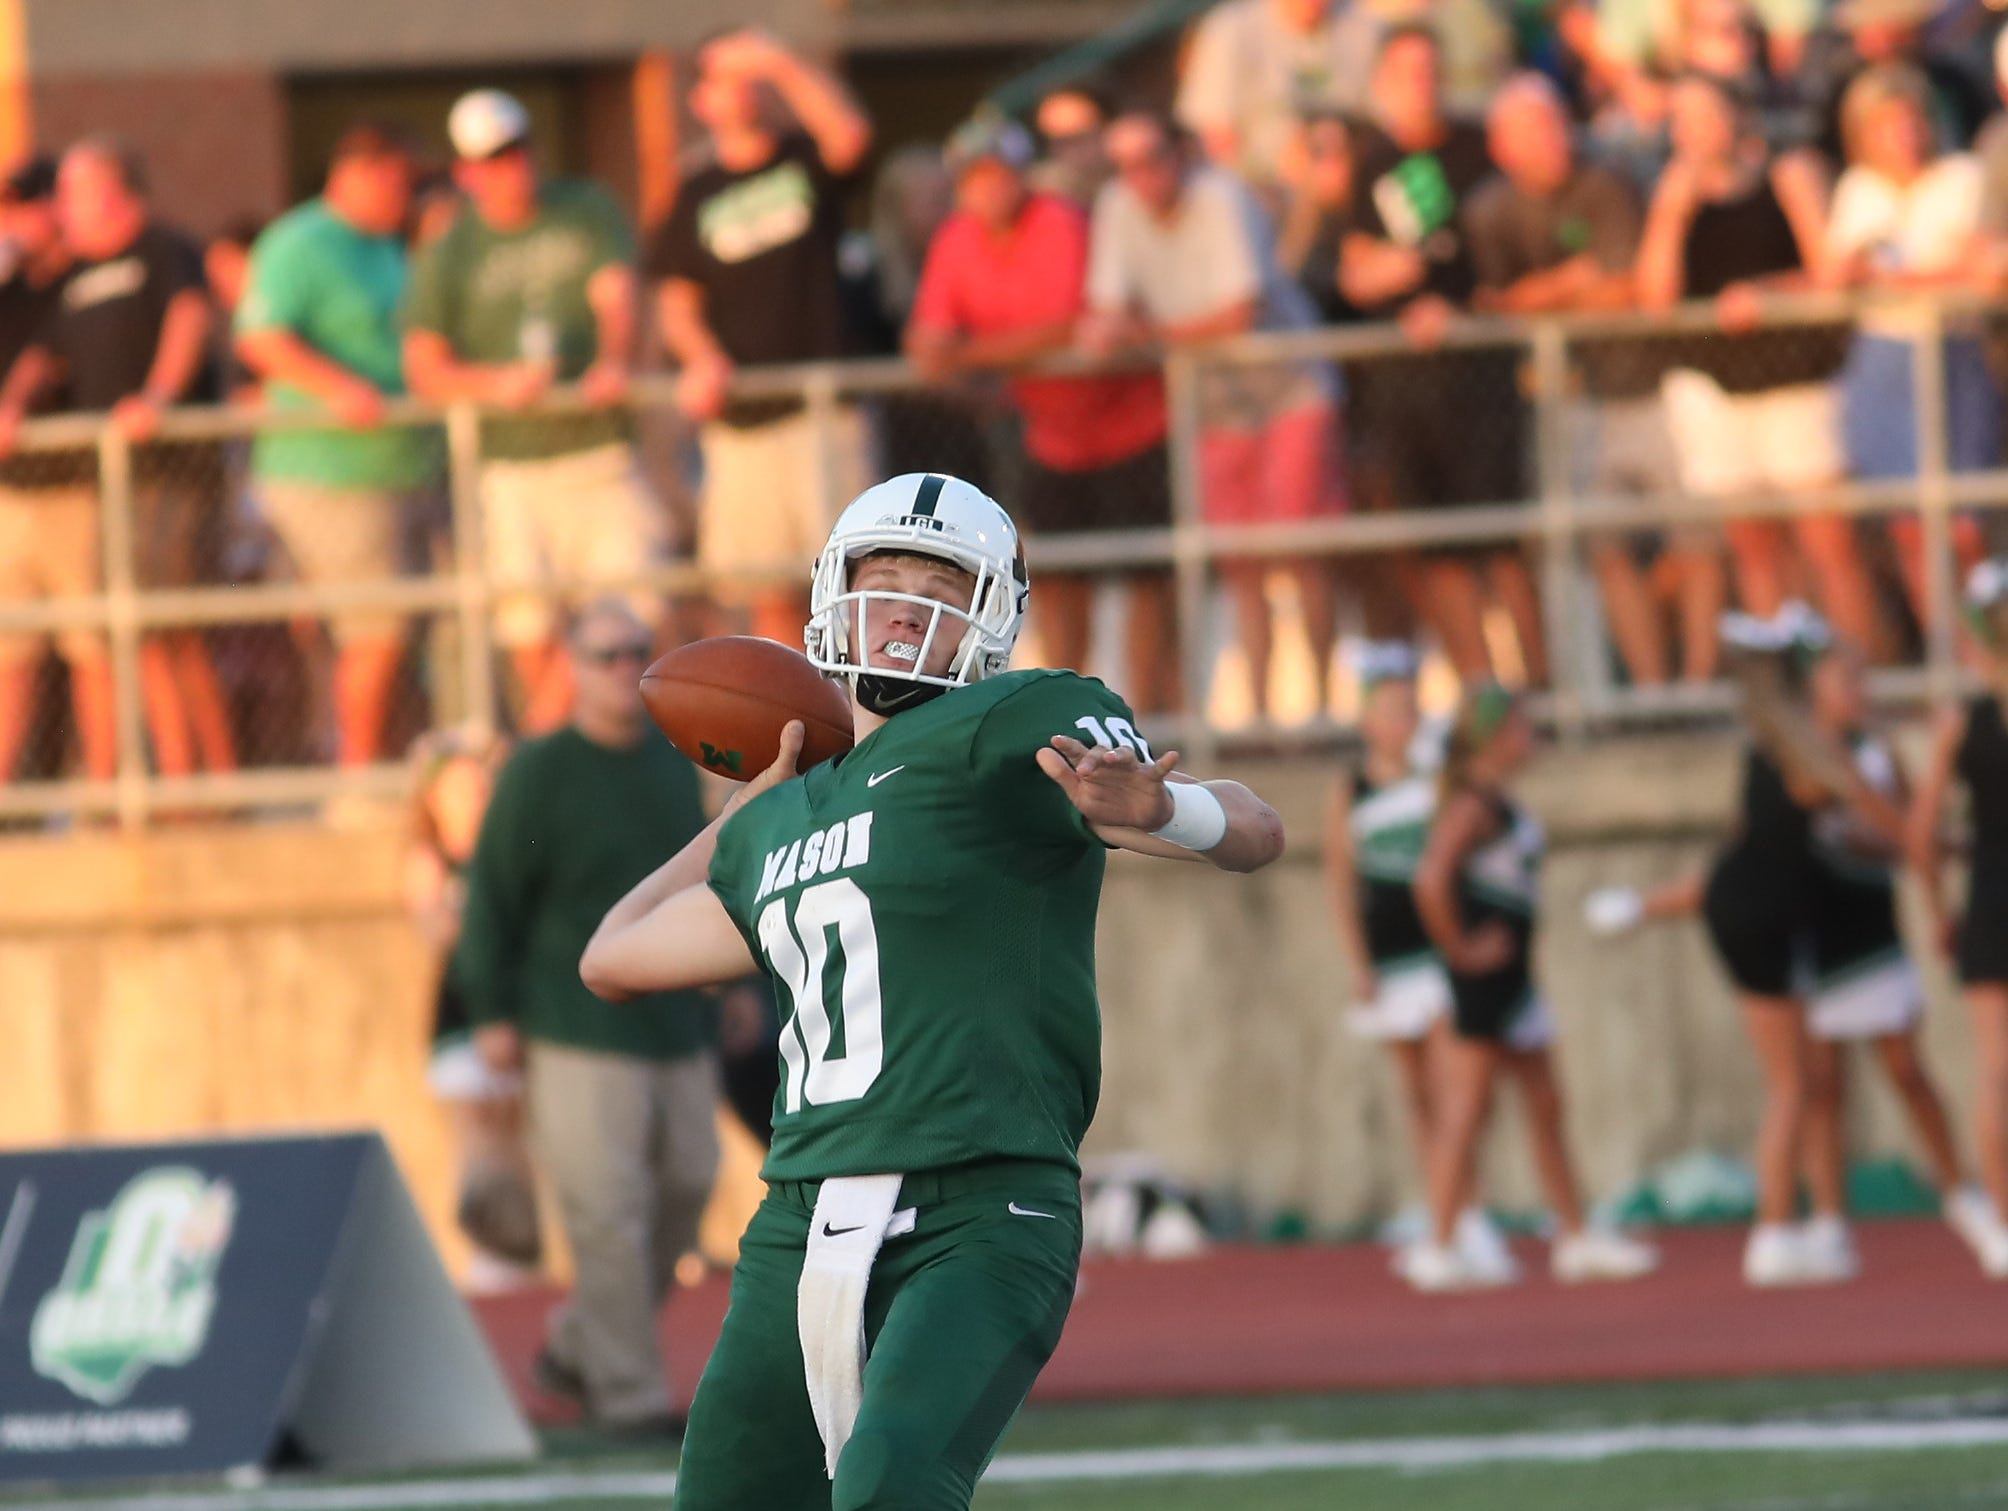 Mason's quarterback Collin Brown throws a touchdown pass for the Comets during the football game against Sycamore, Friday, Sept. 14, 2018.